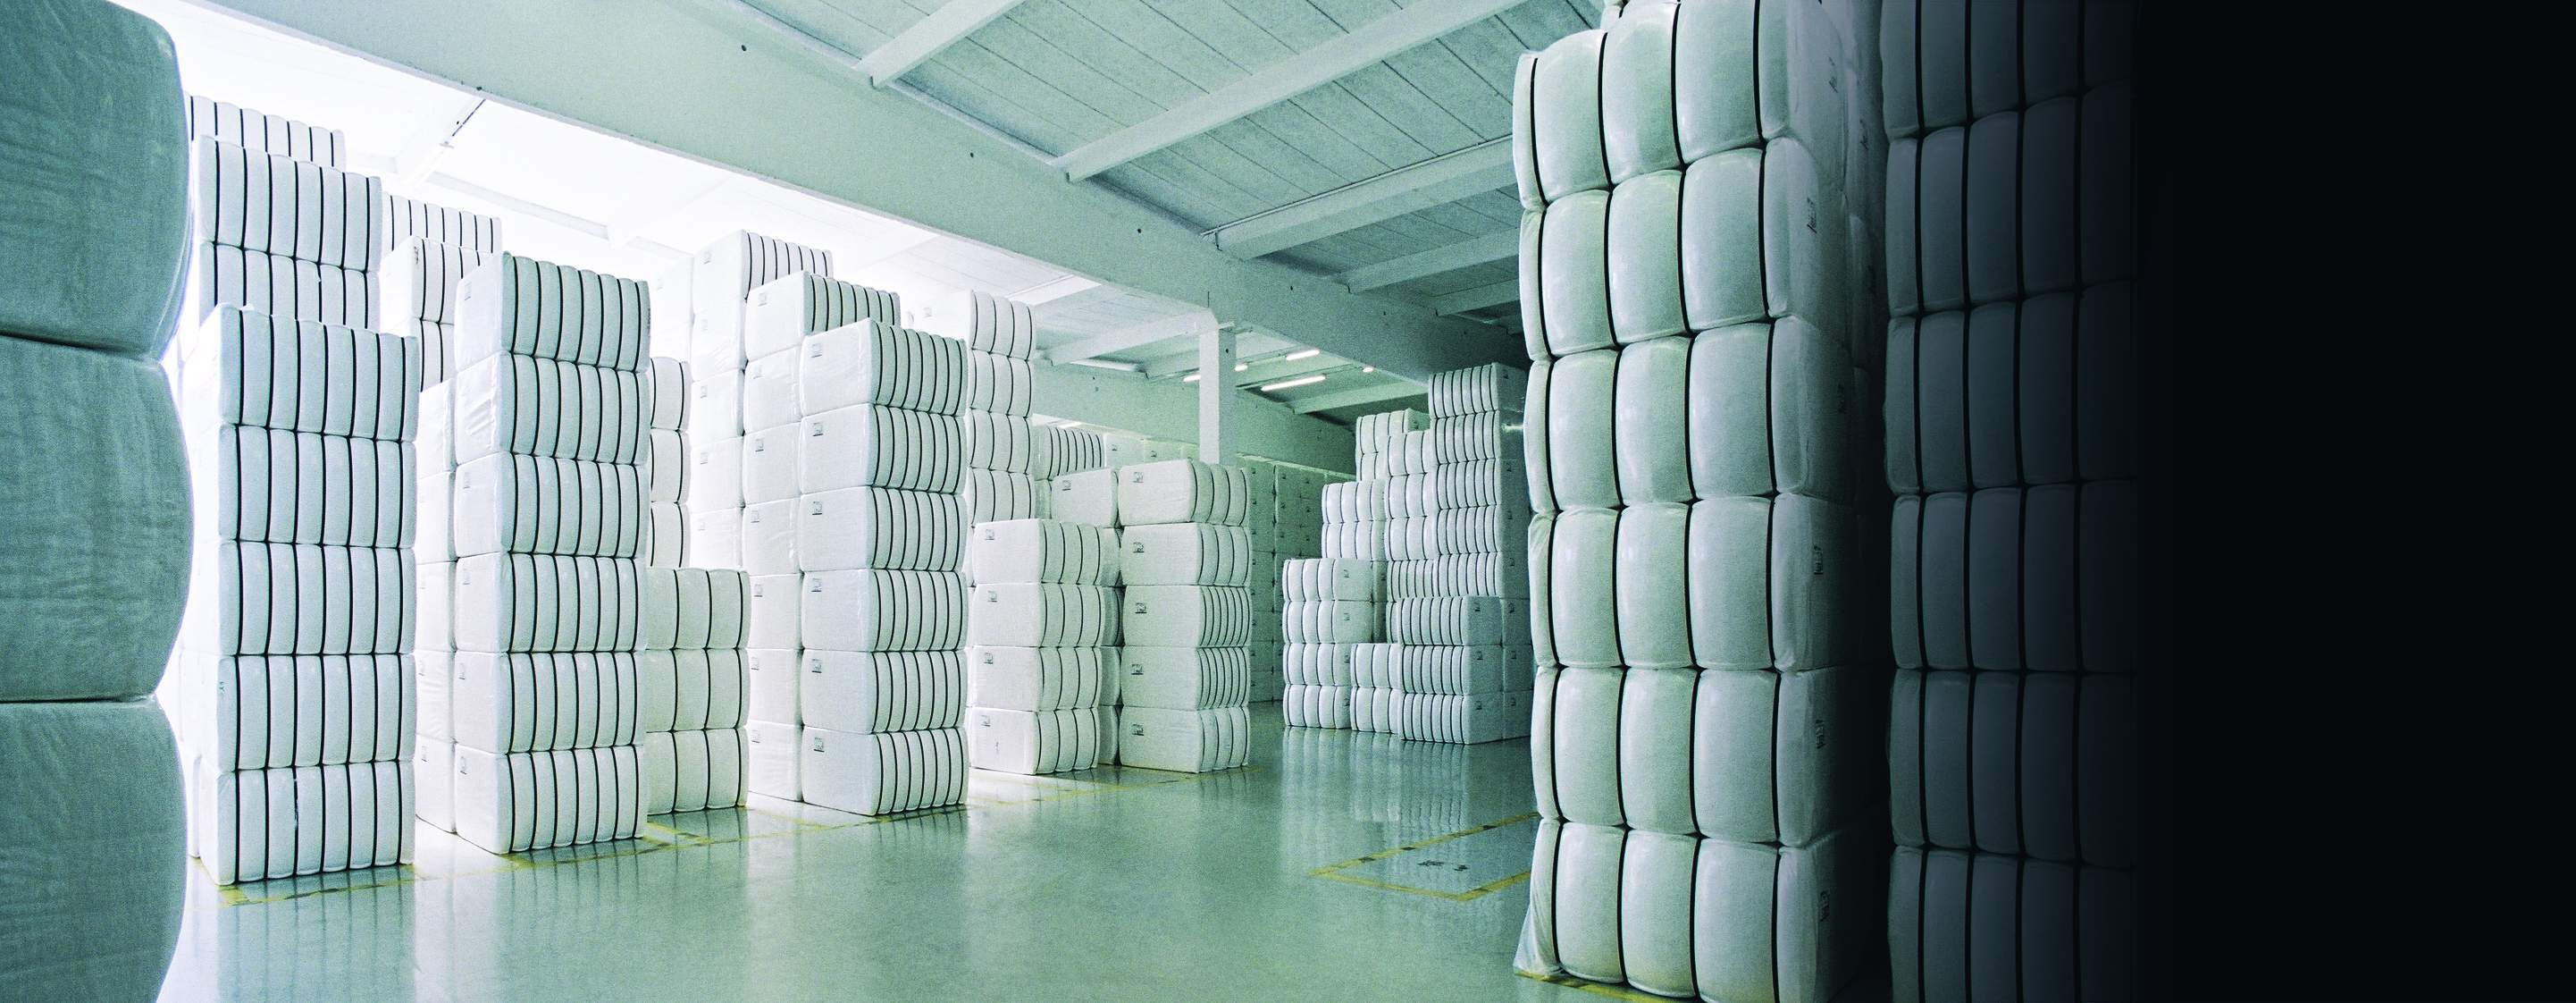 "global and china cellulose pulp industry Pdf pulp and paper world, ""pulp and paper industry investment picking up,""  accessed  south america looking to cater to china's increased pulp  consumption."